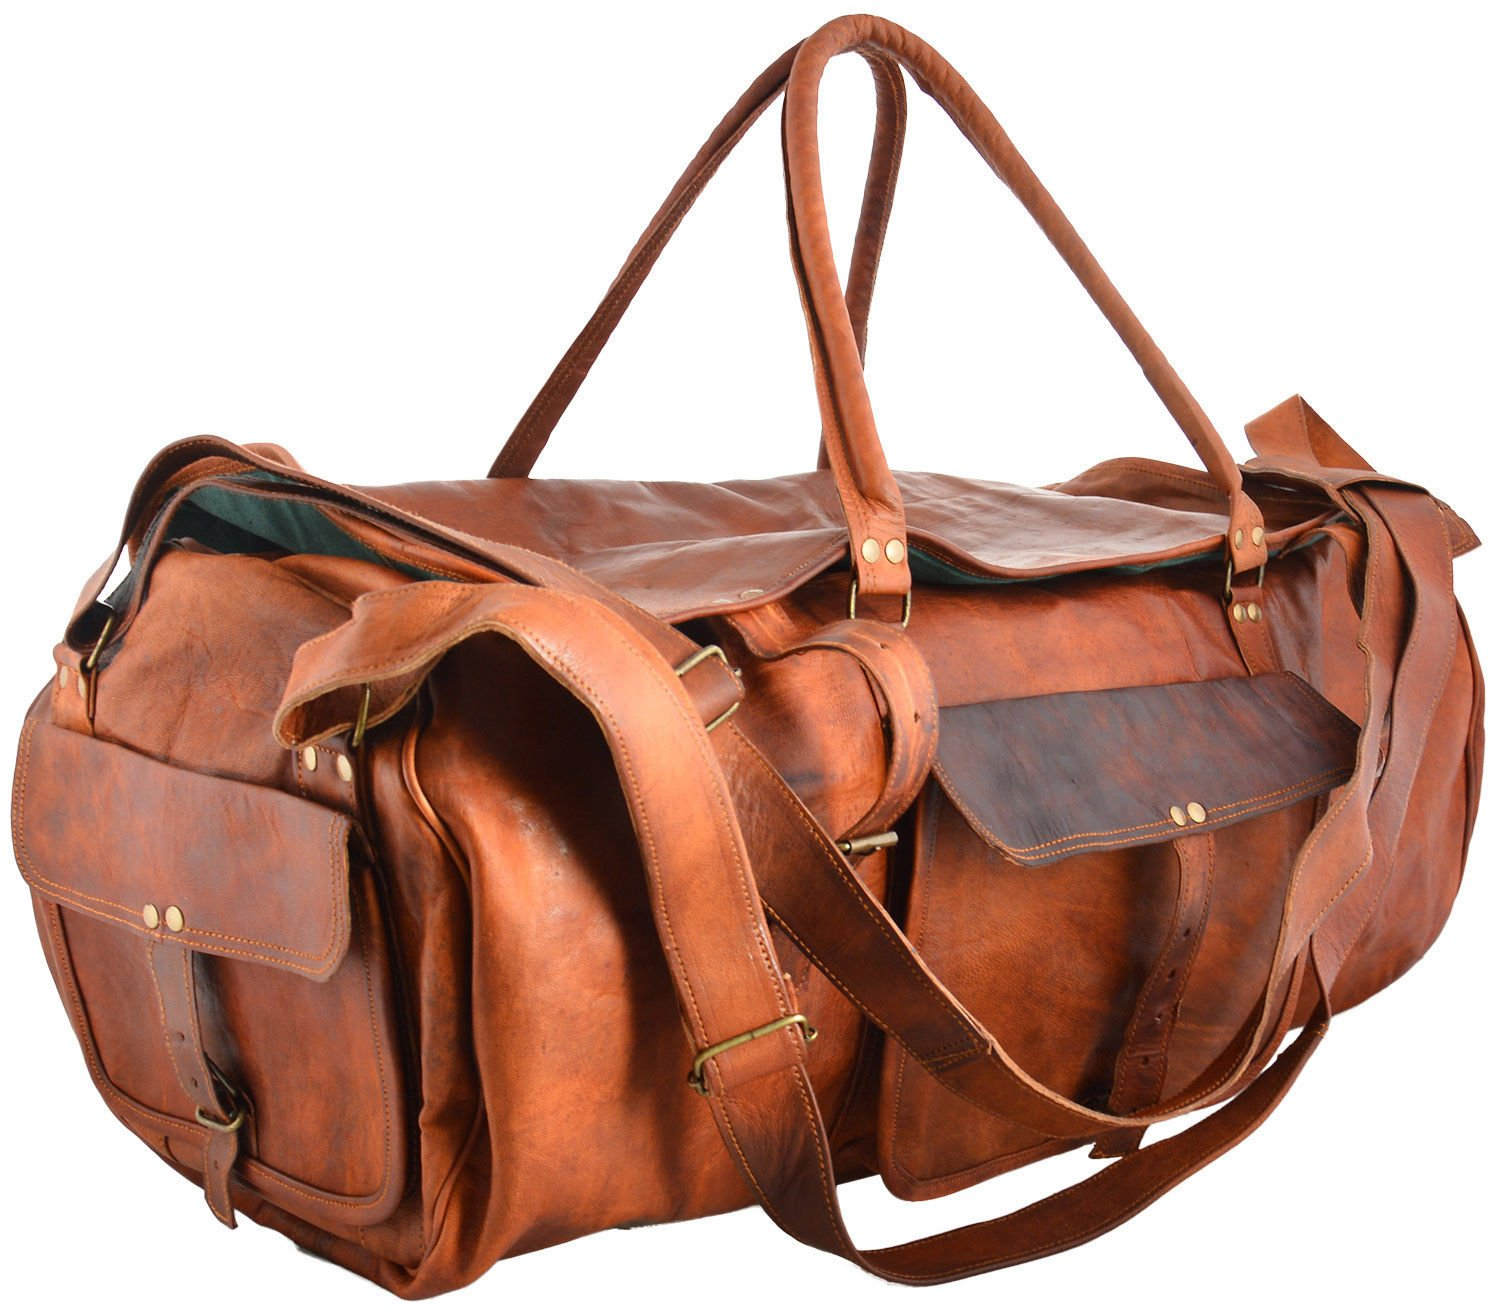 thehandicraftworld Real goat leather handmade travel luggage vintage holiday trip india duffel bag